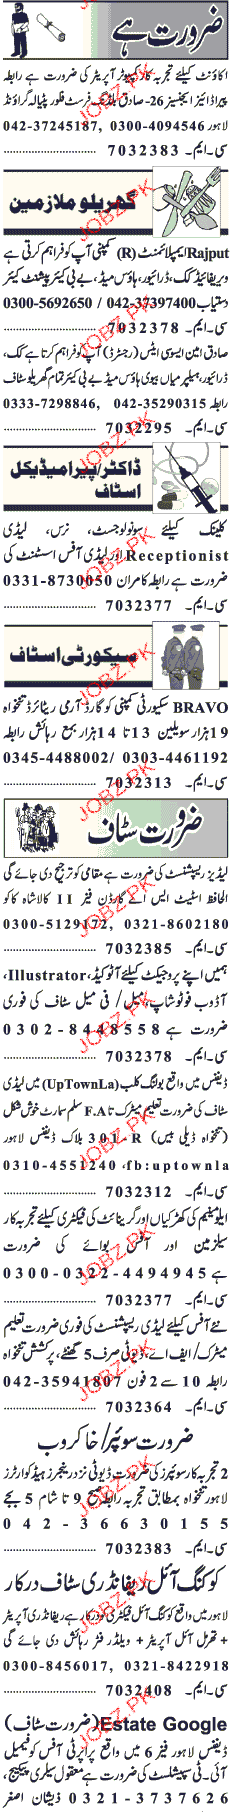 Computer Operators, House Miad, Clerks Wanted